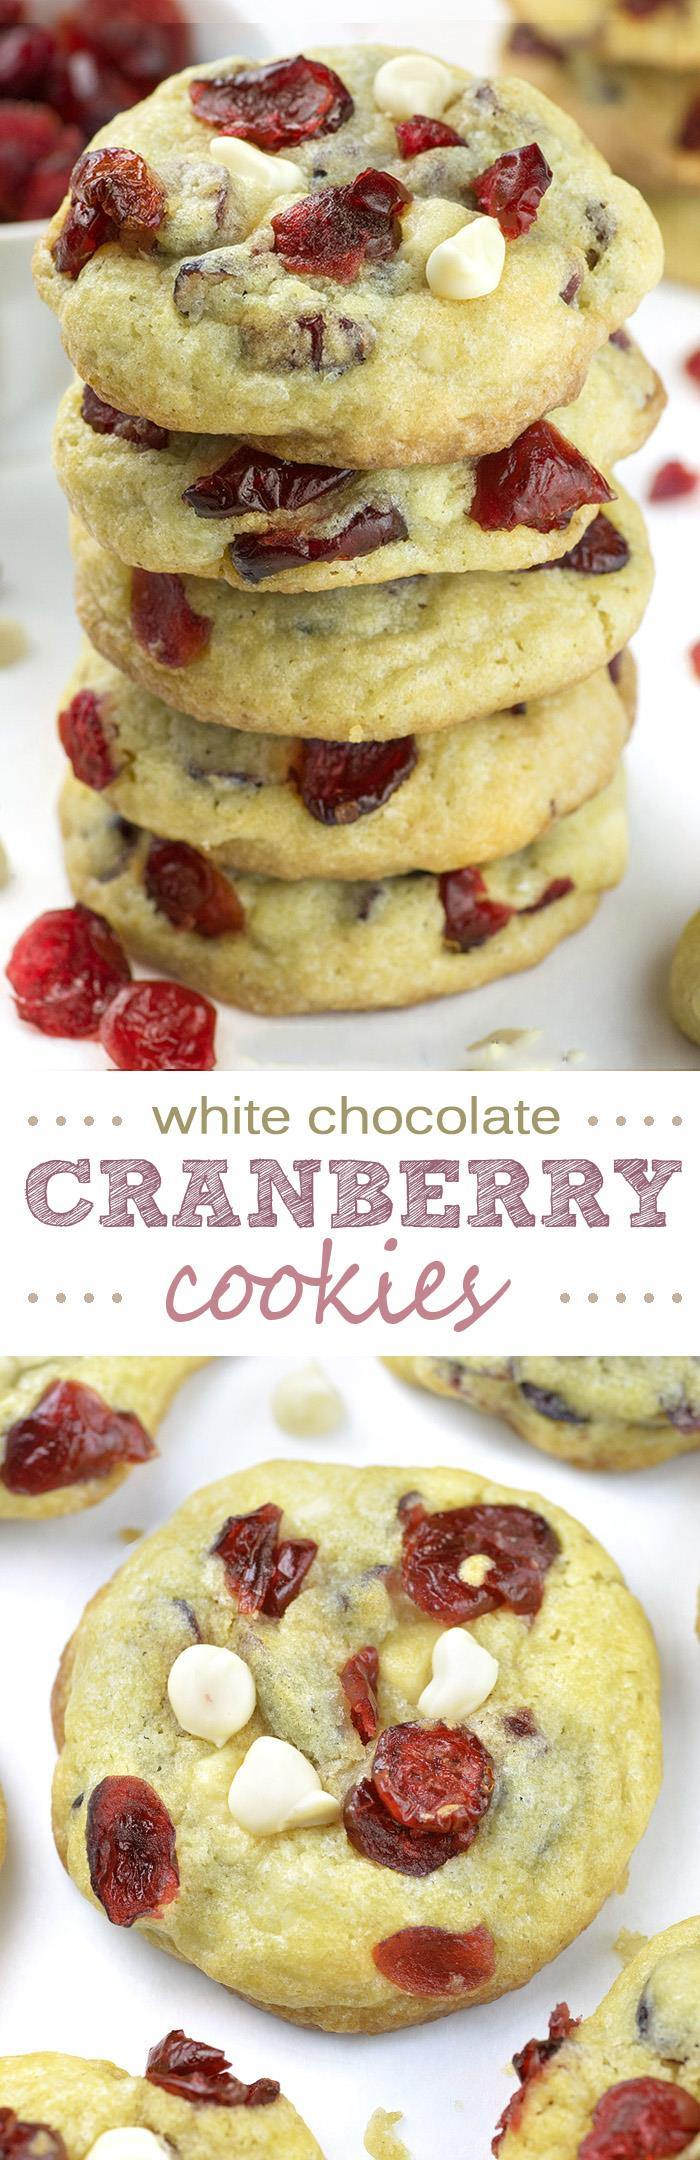 White Chocolate Cranberry Cookies | OMG Chocolate Desserts